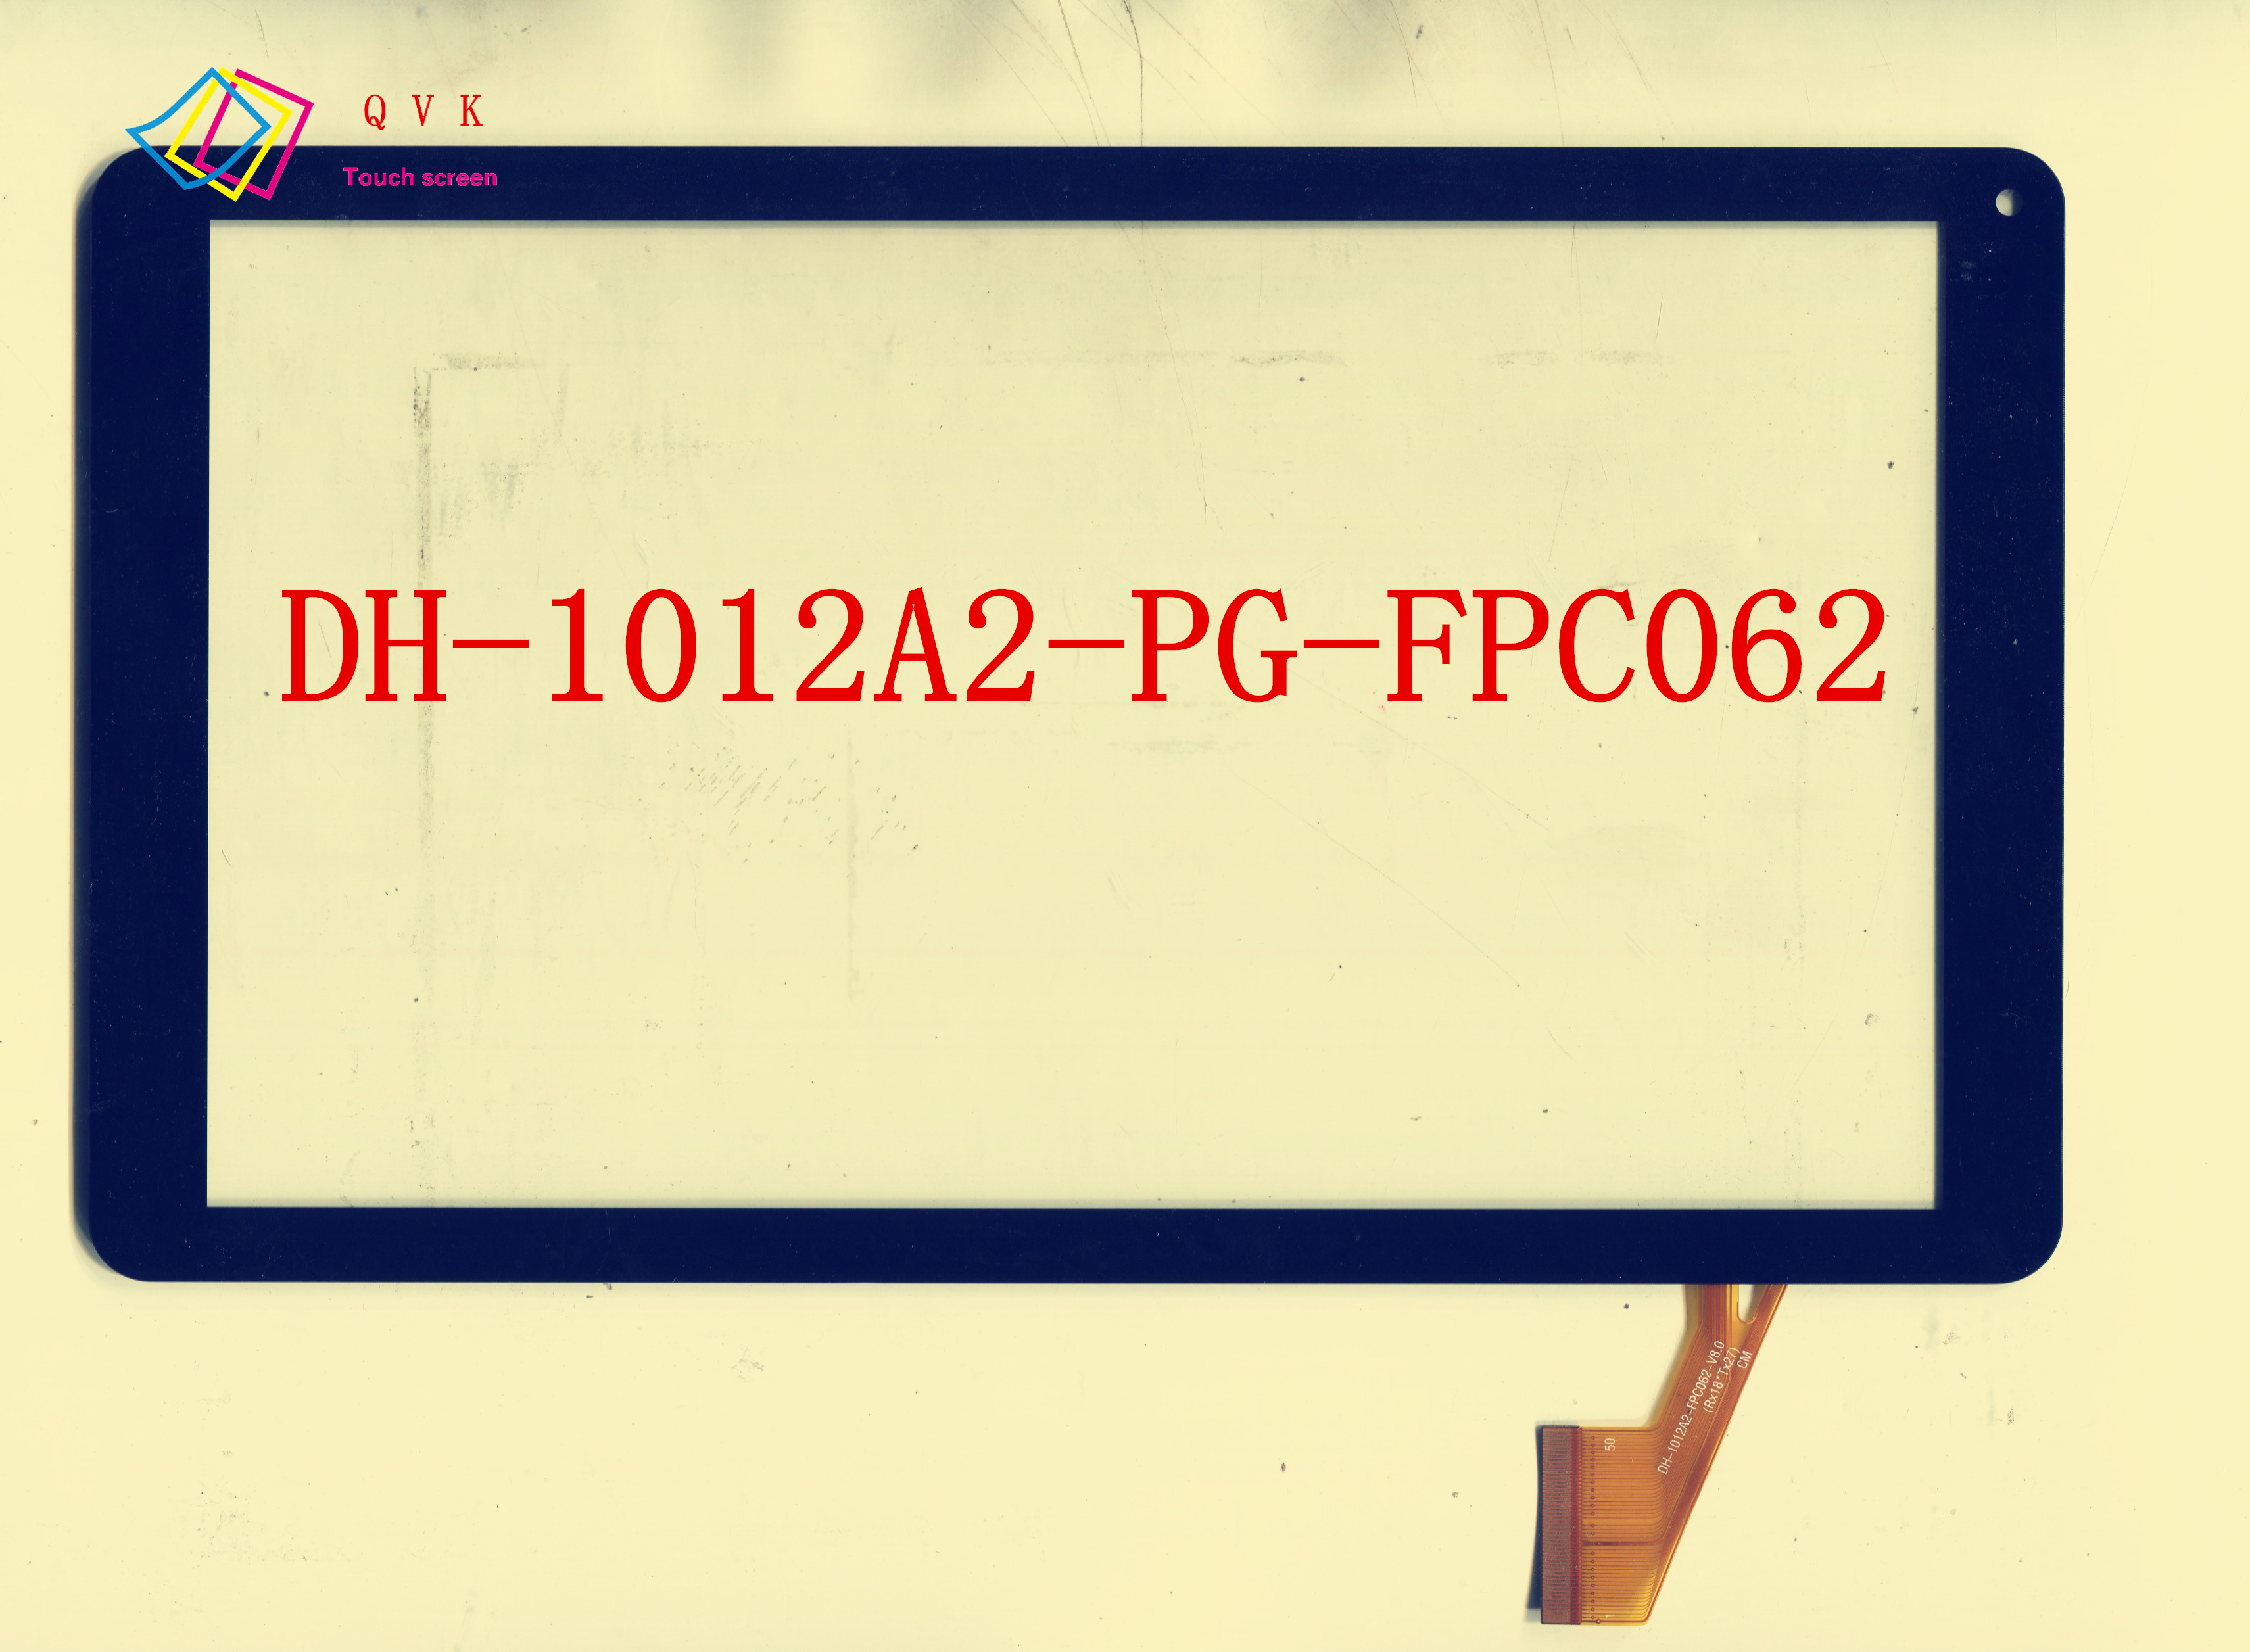 10.1 inch DH-1012A2-PG-FPC062-V5.0 for Supra M141 BRAVIS NB1 tablet PC touch screen panel digitizer glass sensor replacement